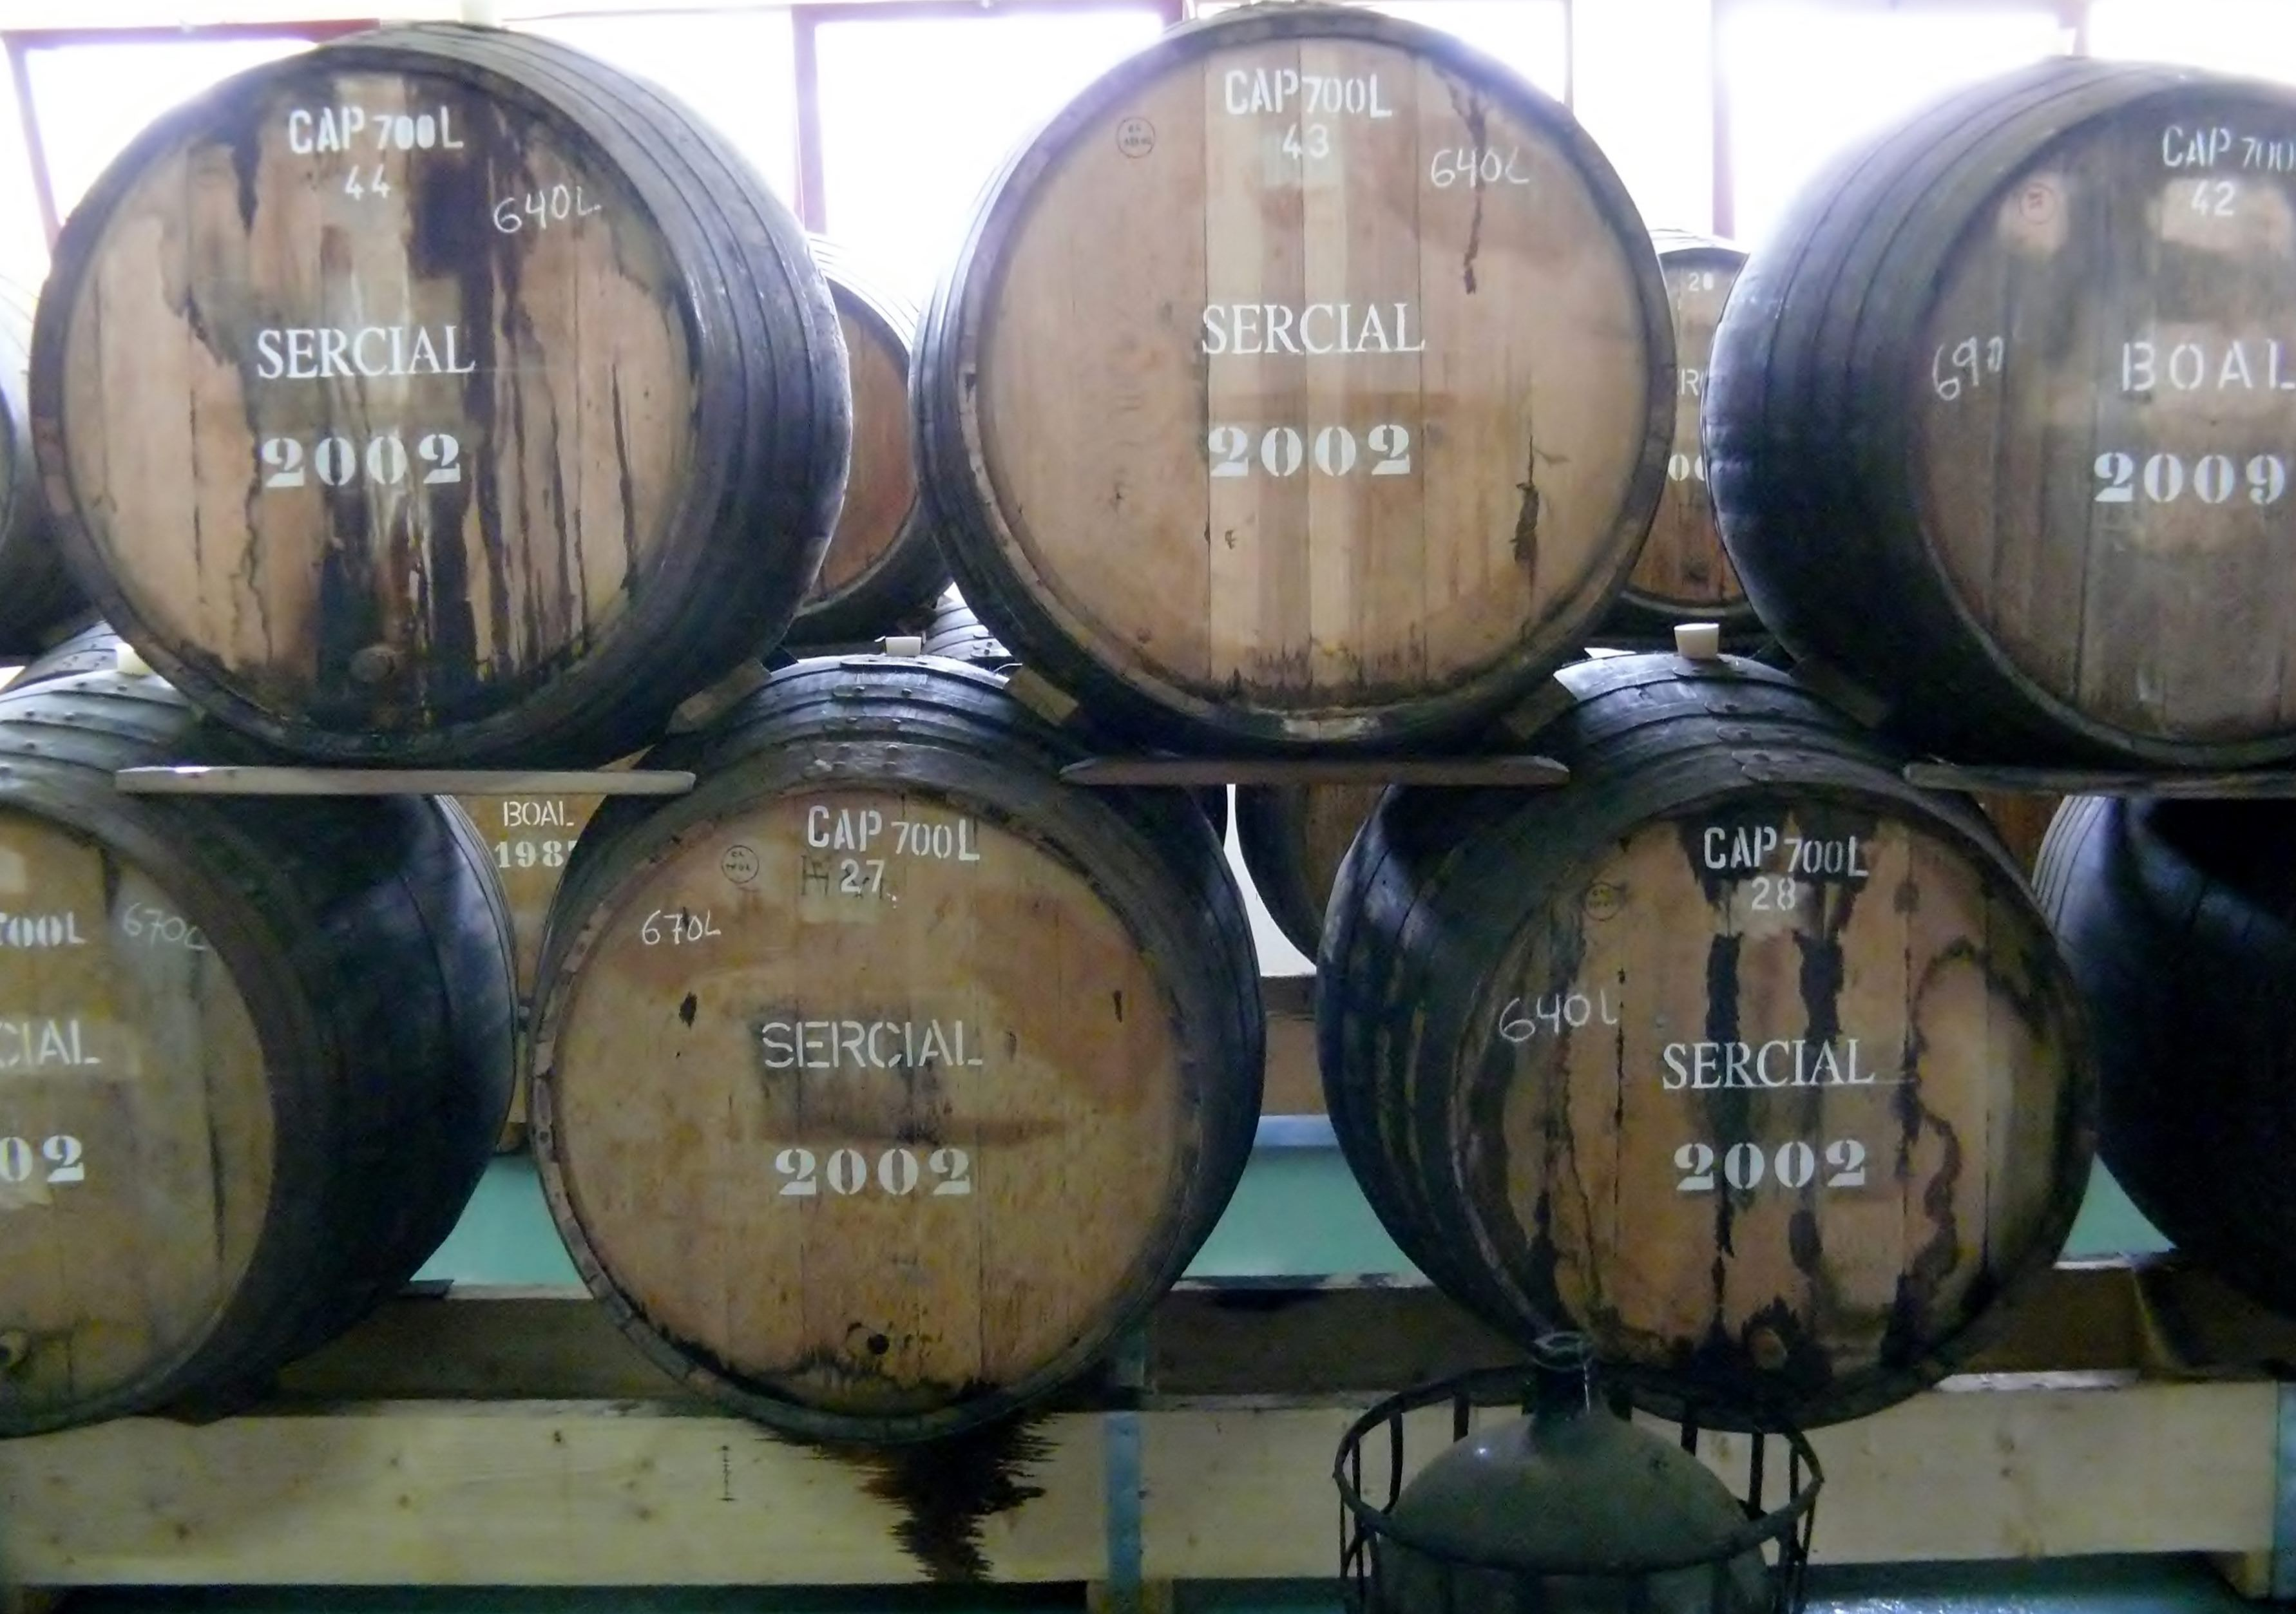 Sercial wines aging